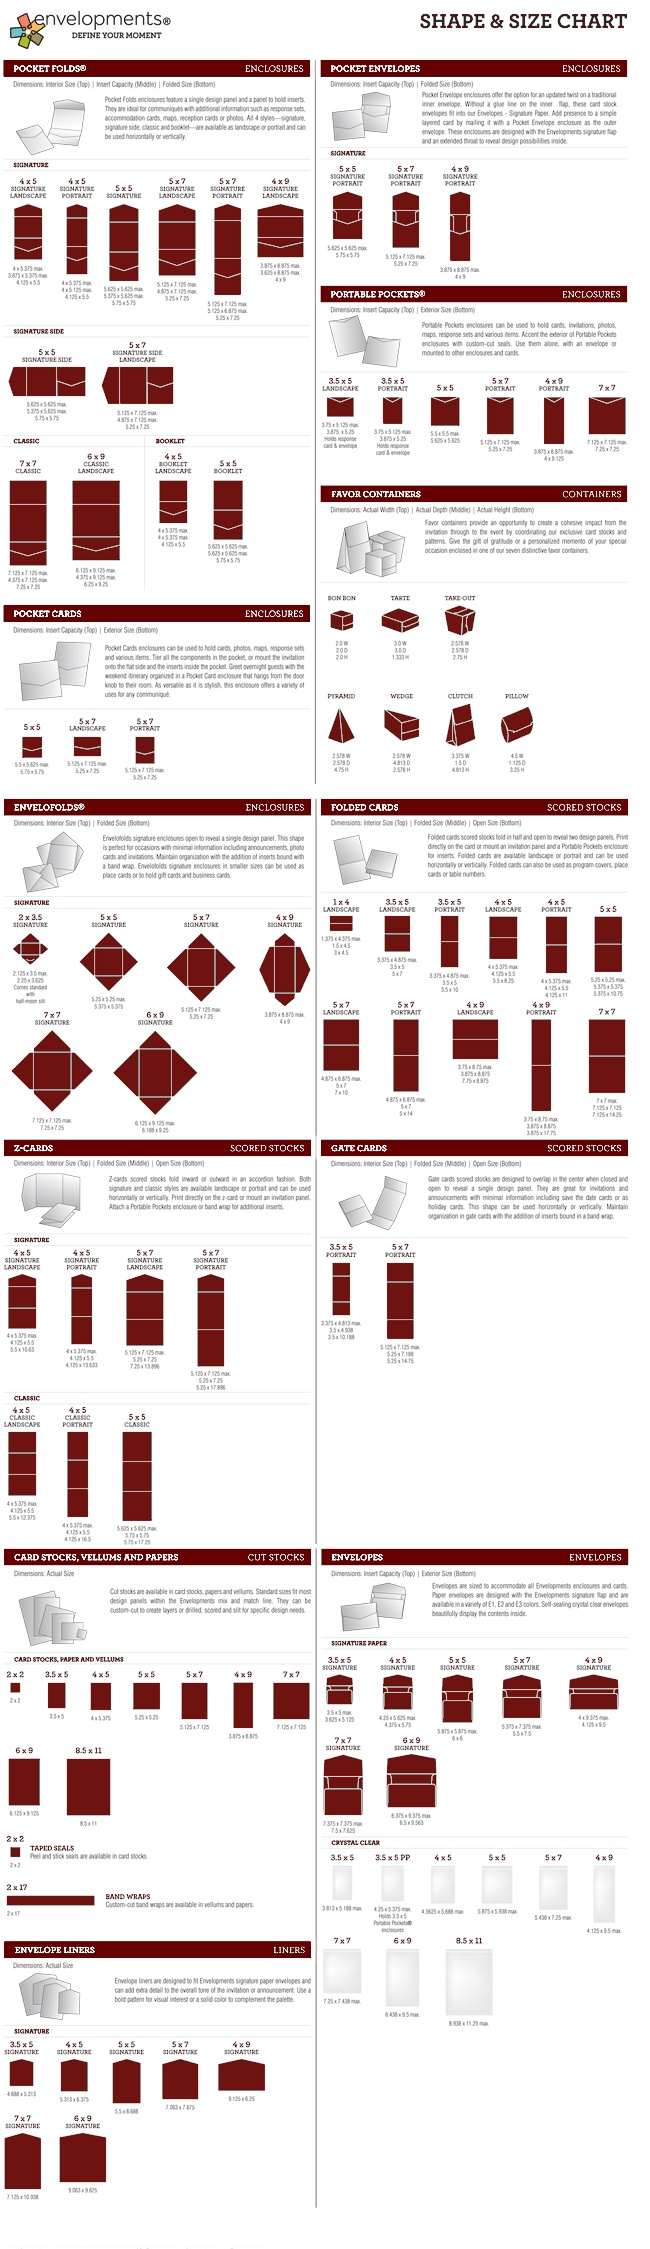 The 309 best paper cards sizes templates images on pinterest envelopments shape and size chart for all paper m4hsunfo